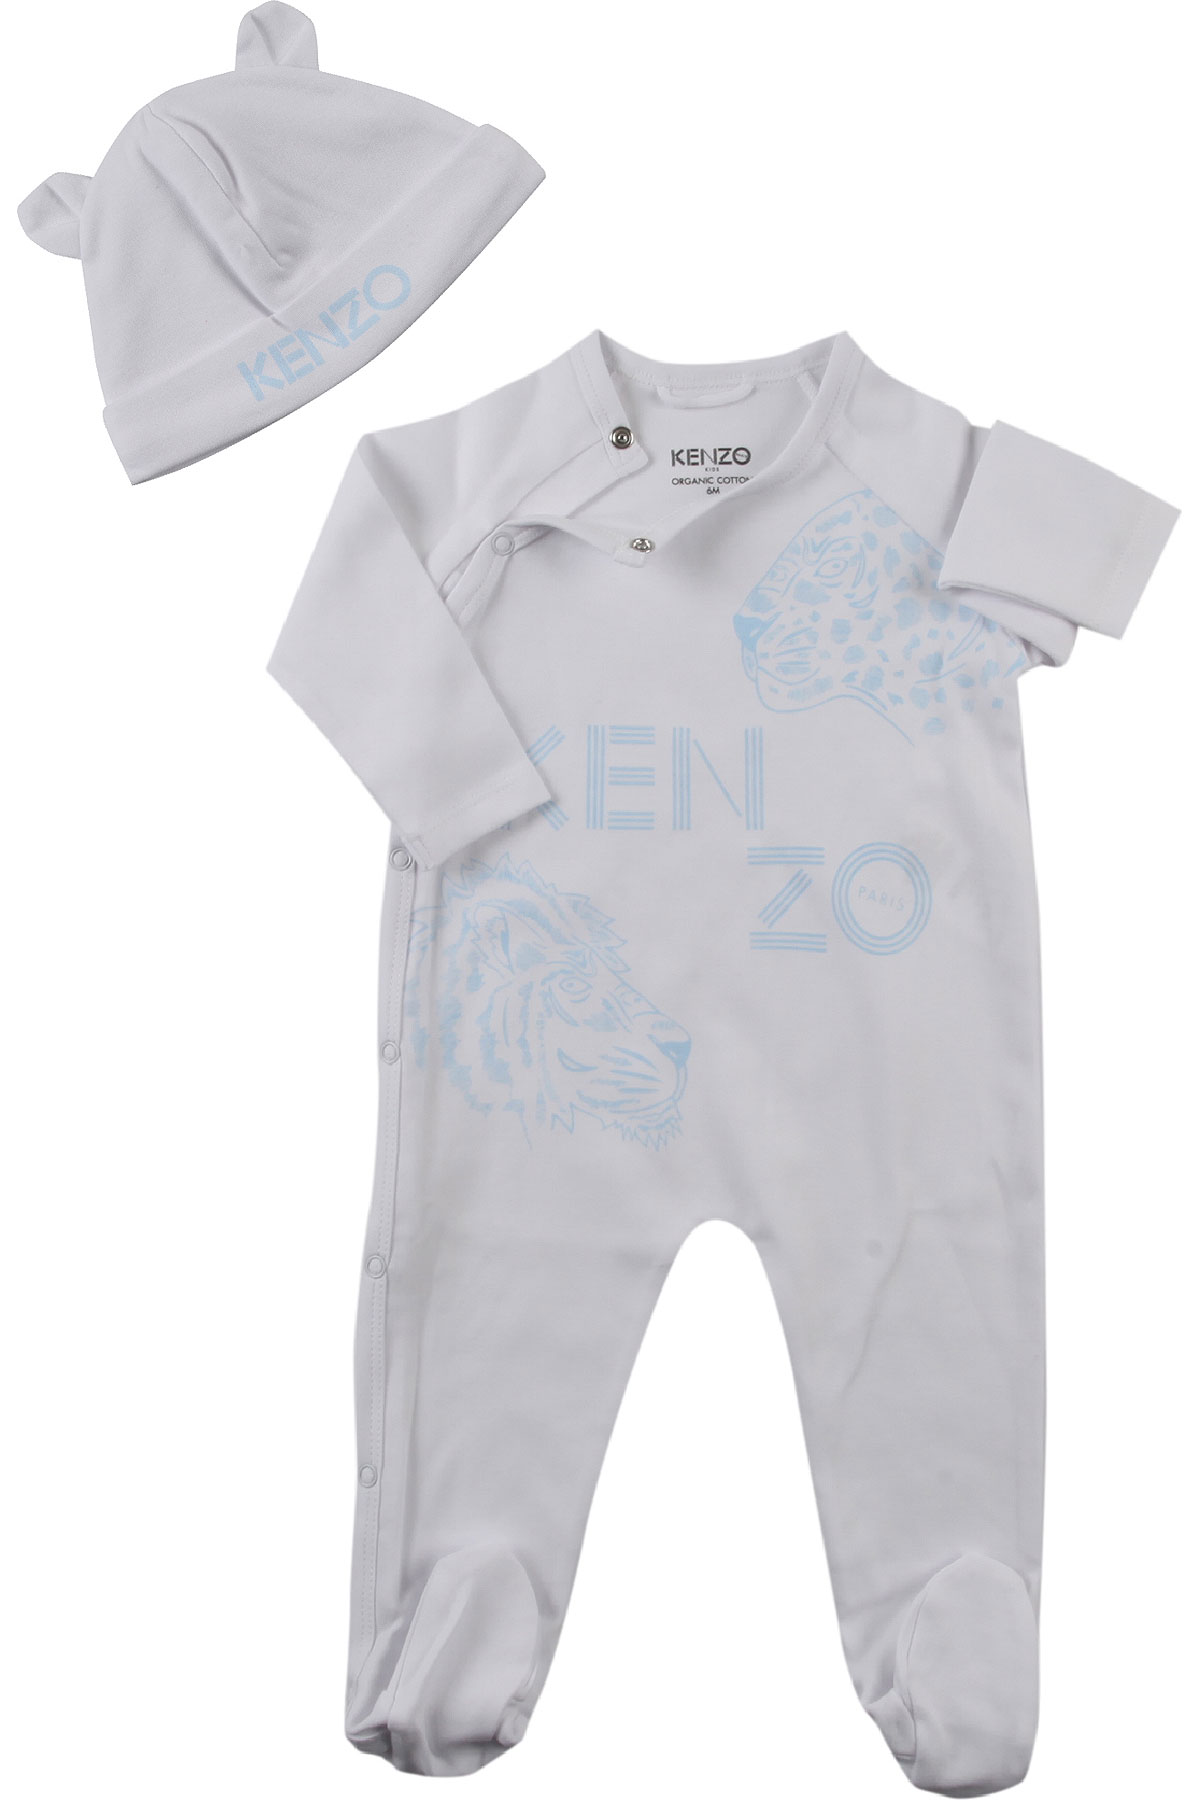 Image of Kenzo Baby Sets for Boys, White, Cotton, 2017, 1M 3M 6M